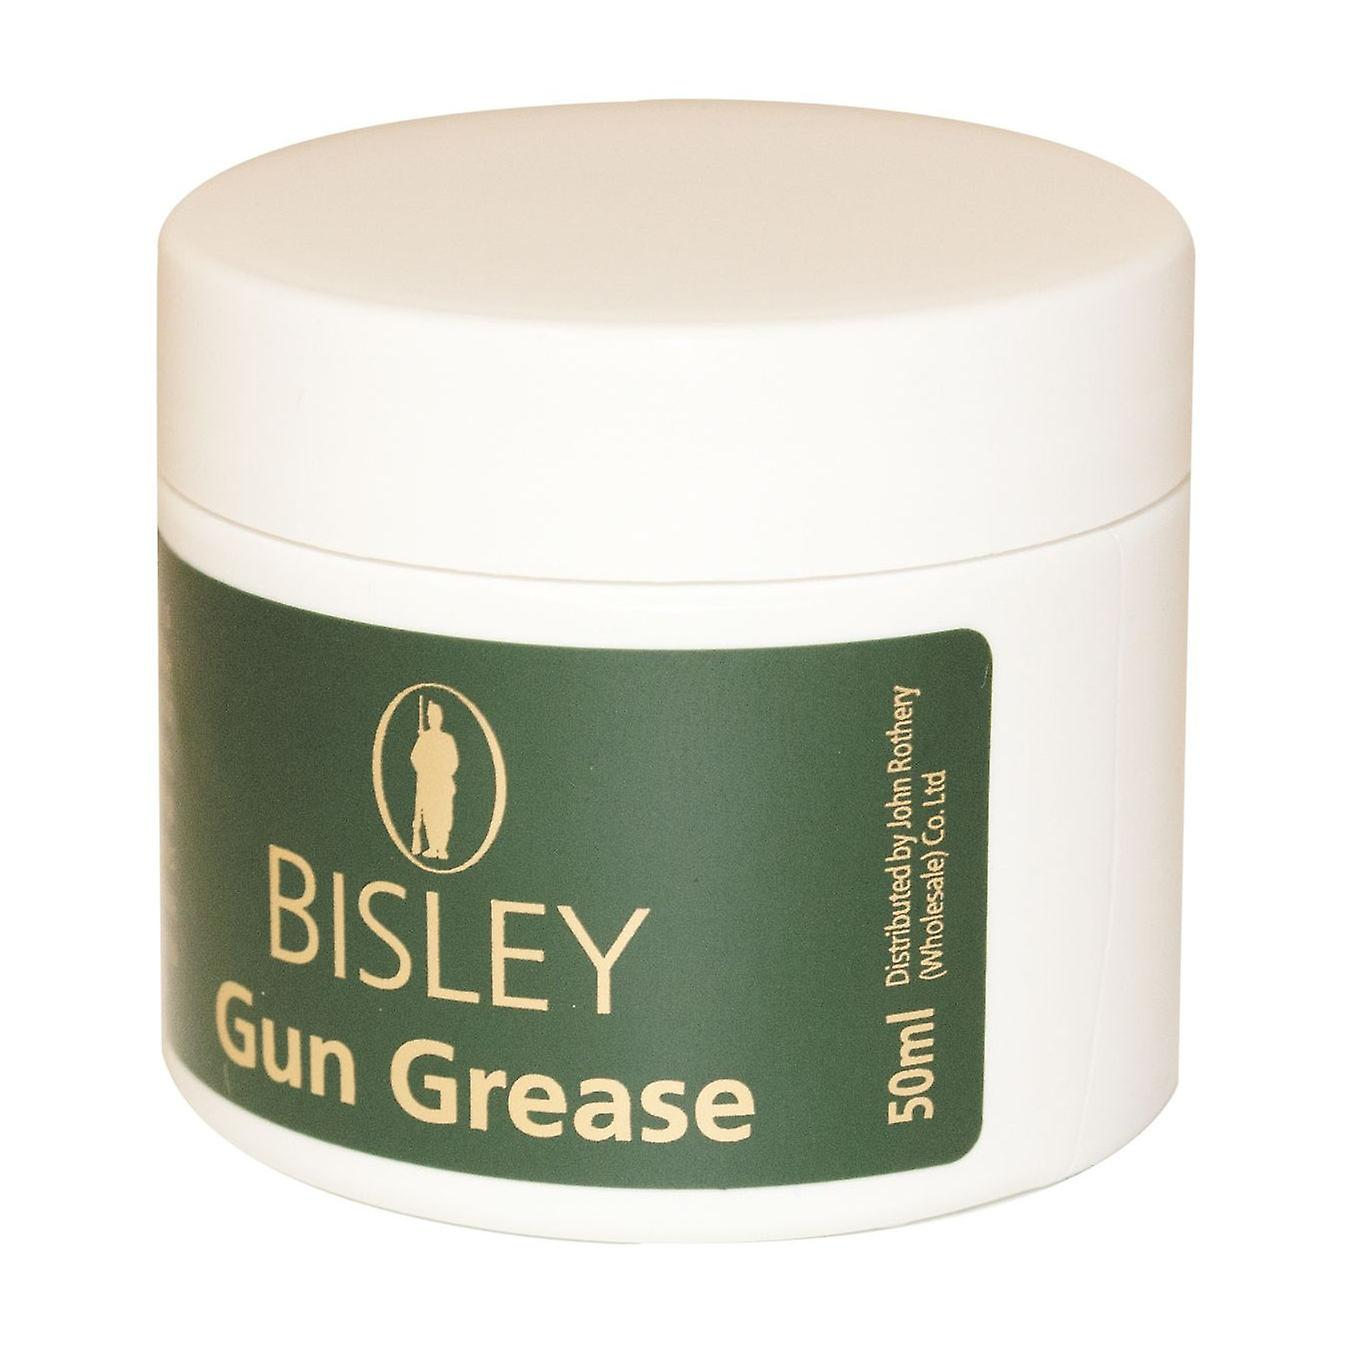 Bisley Gun Grease 50ml tub - lubricant for all gun types - prevents corrosion